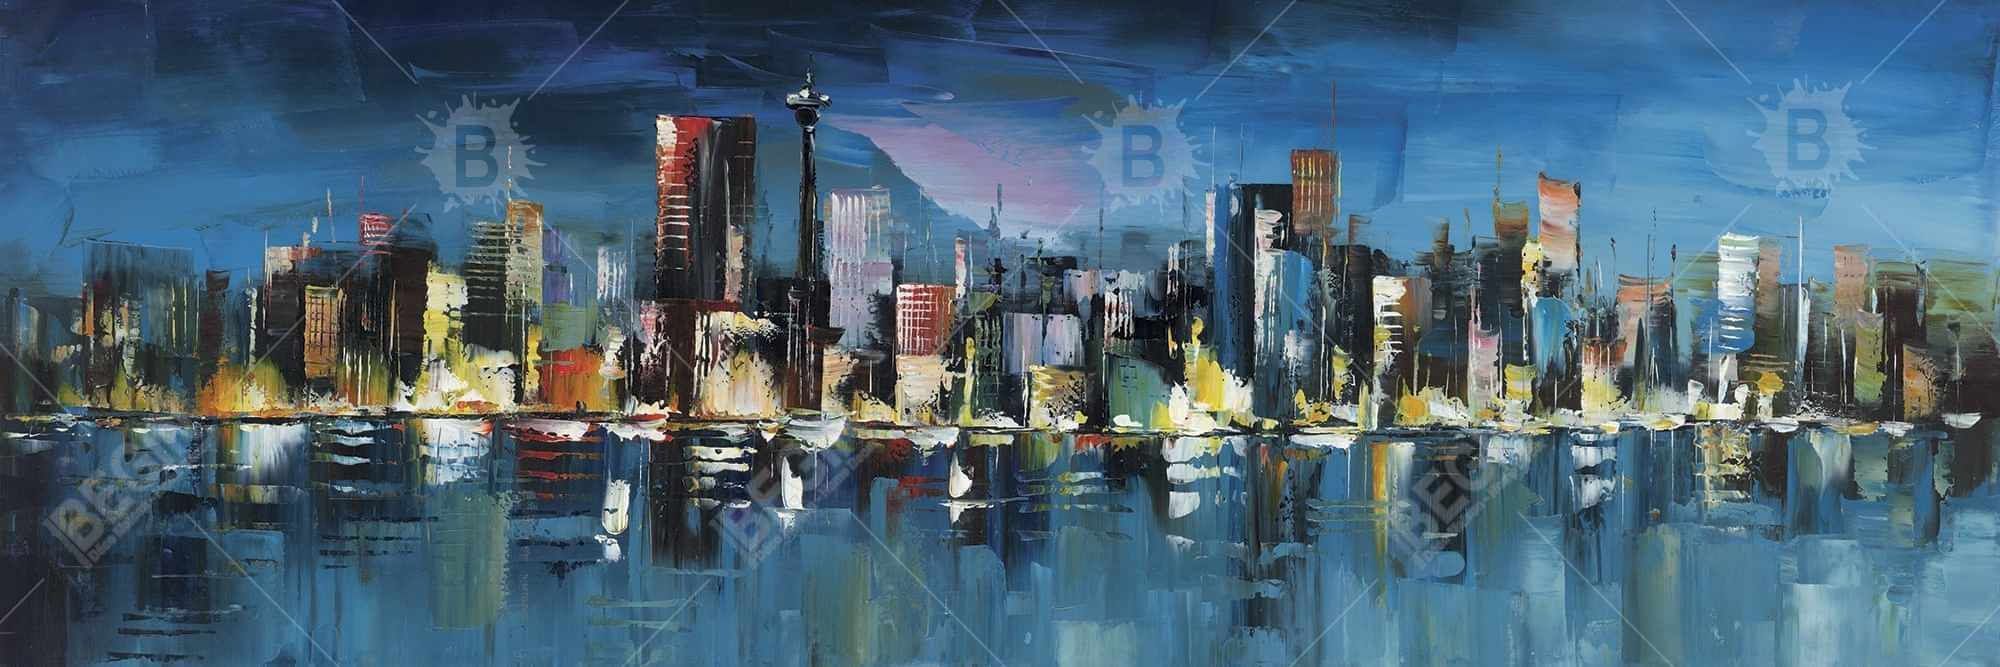 Abstract blue cityscape by night